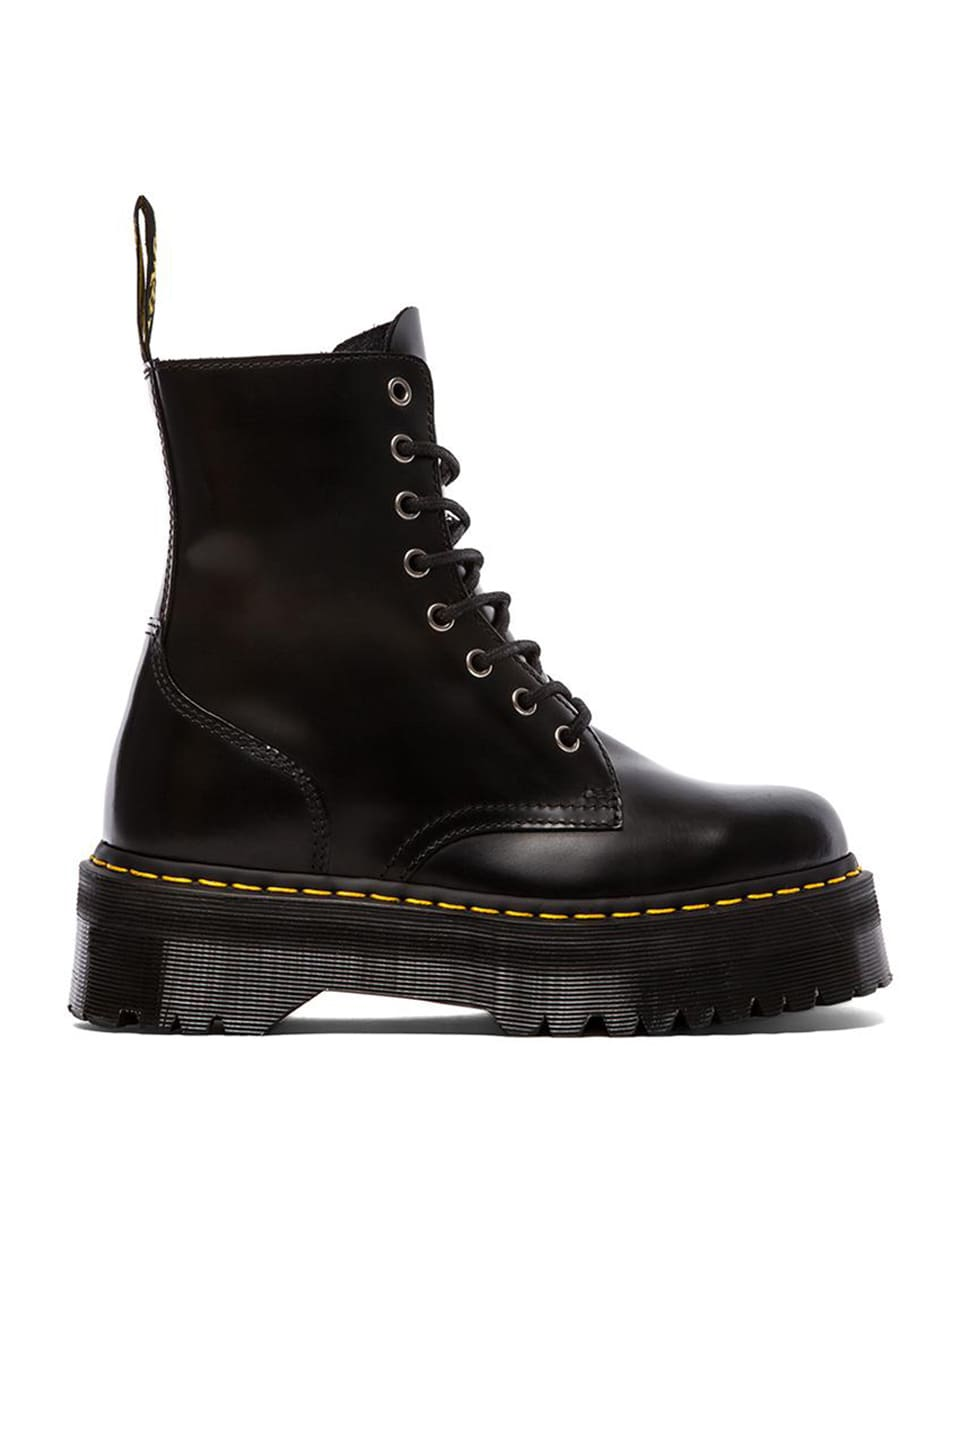 Dr. Martens Jadon 8-Eye Boot in Black